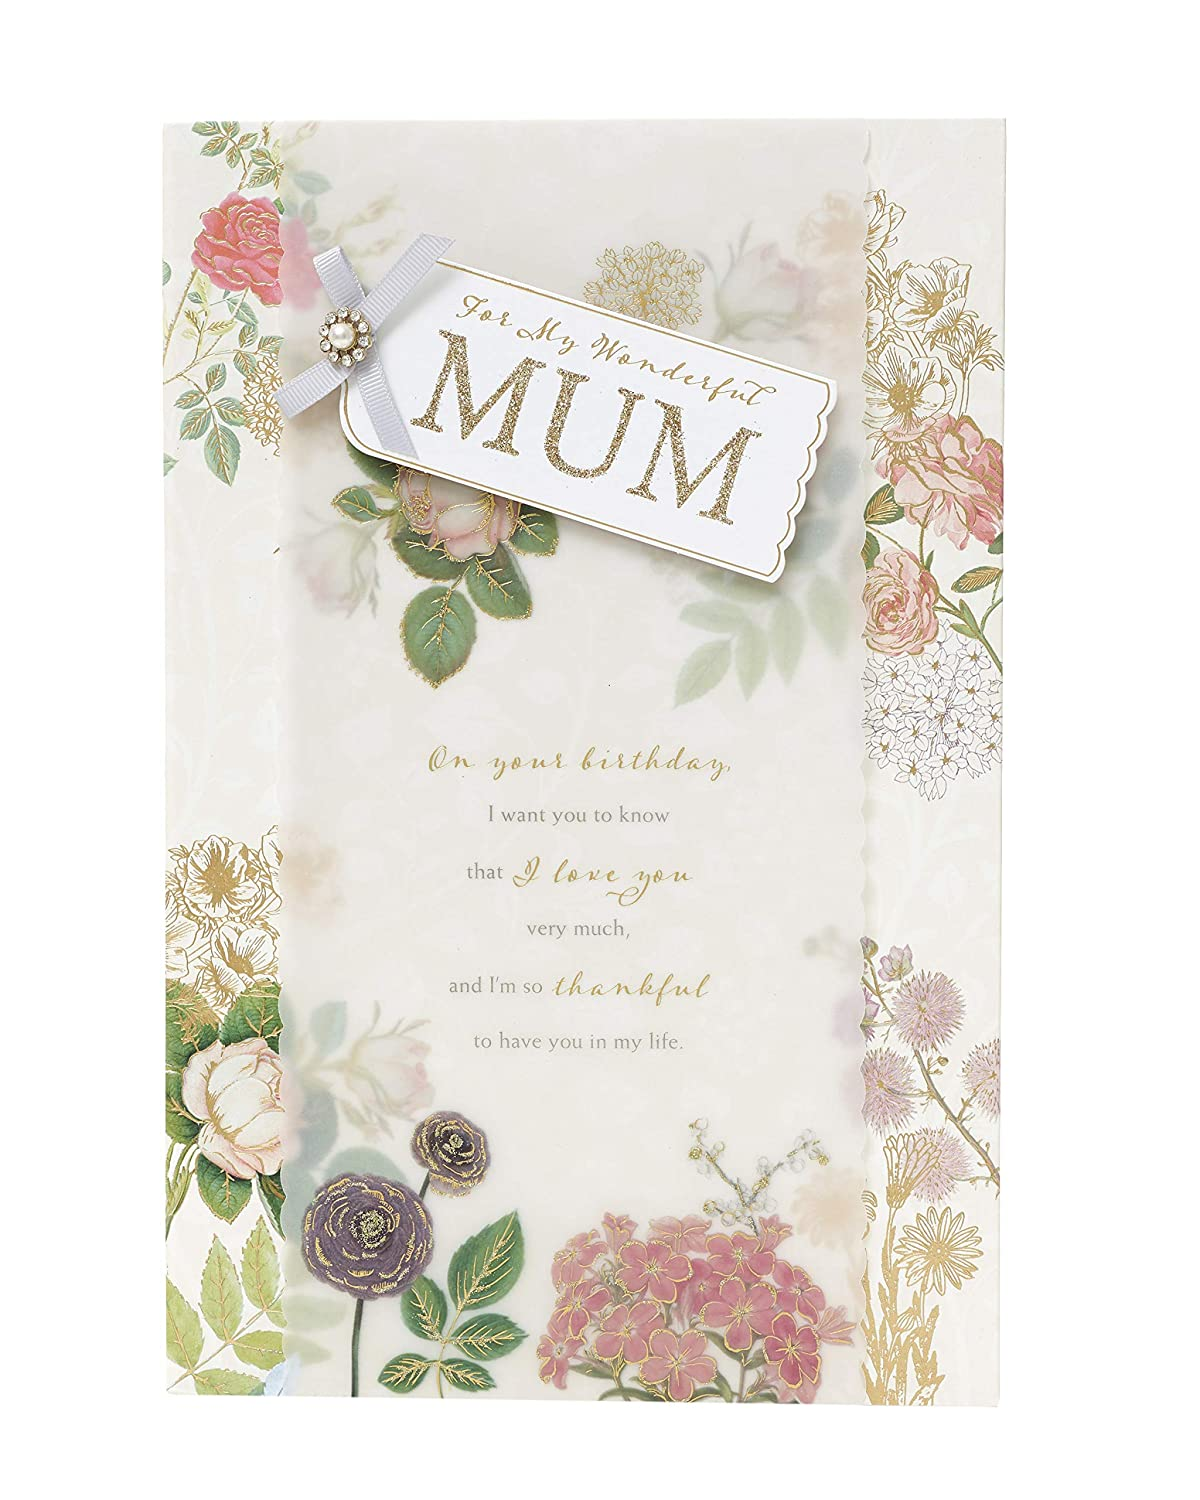 Gift Card for Mum Gifts for Her Card for Amazing Mum Sentimental Mum Card with Lovely Verse Mum Birthday Card